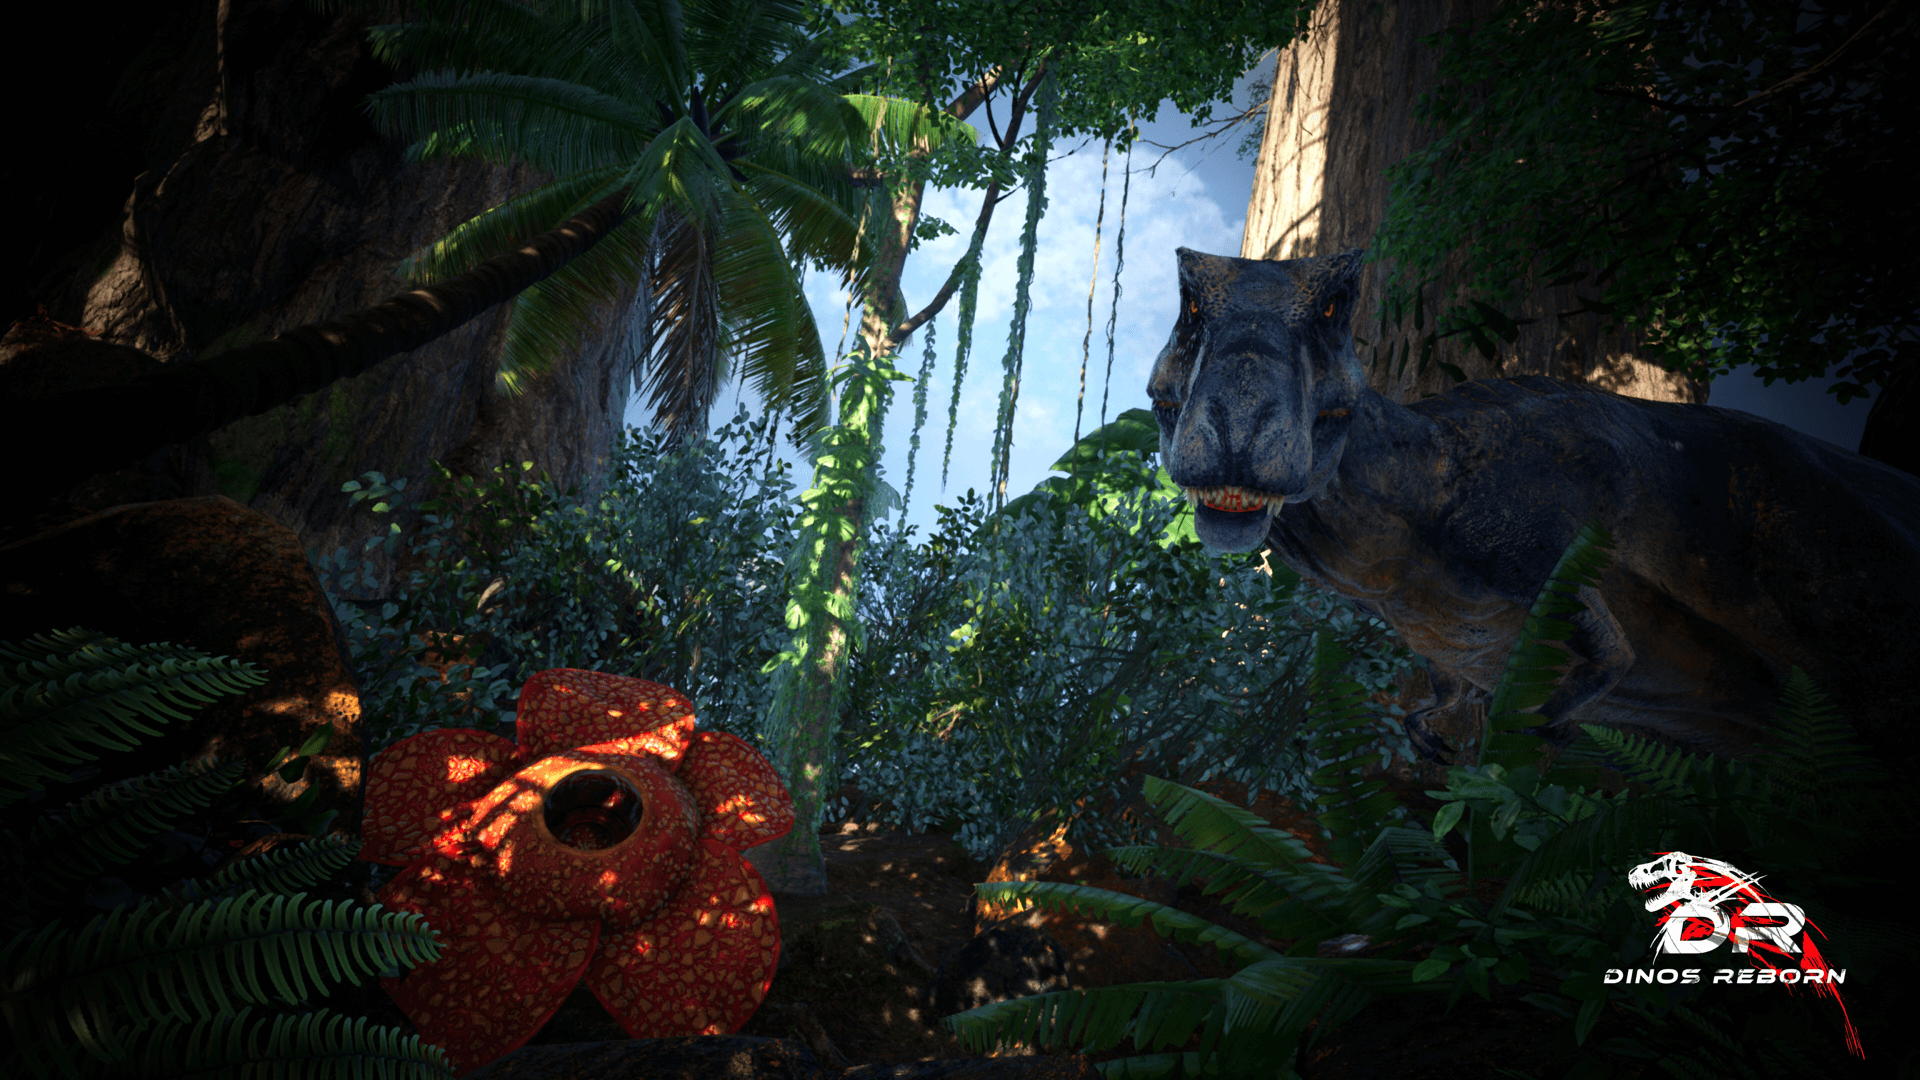 Dinos Reborn is a Sci-Fi Shooter Set for Release in 2022